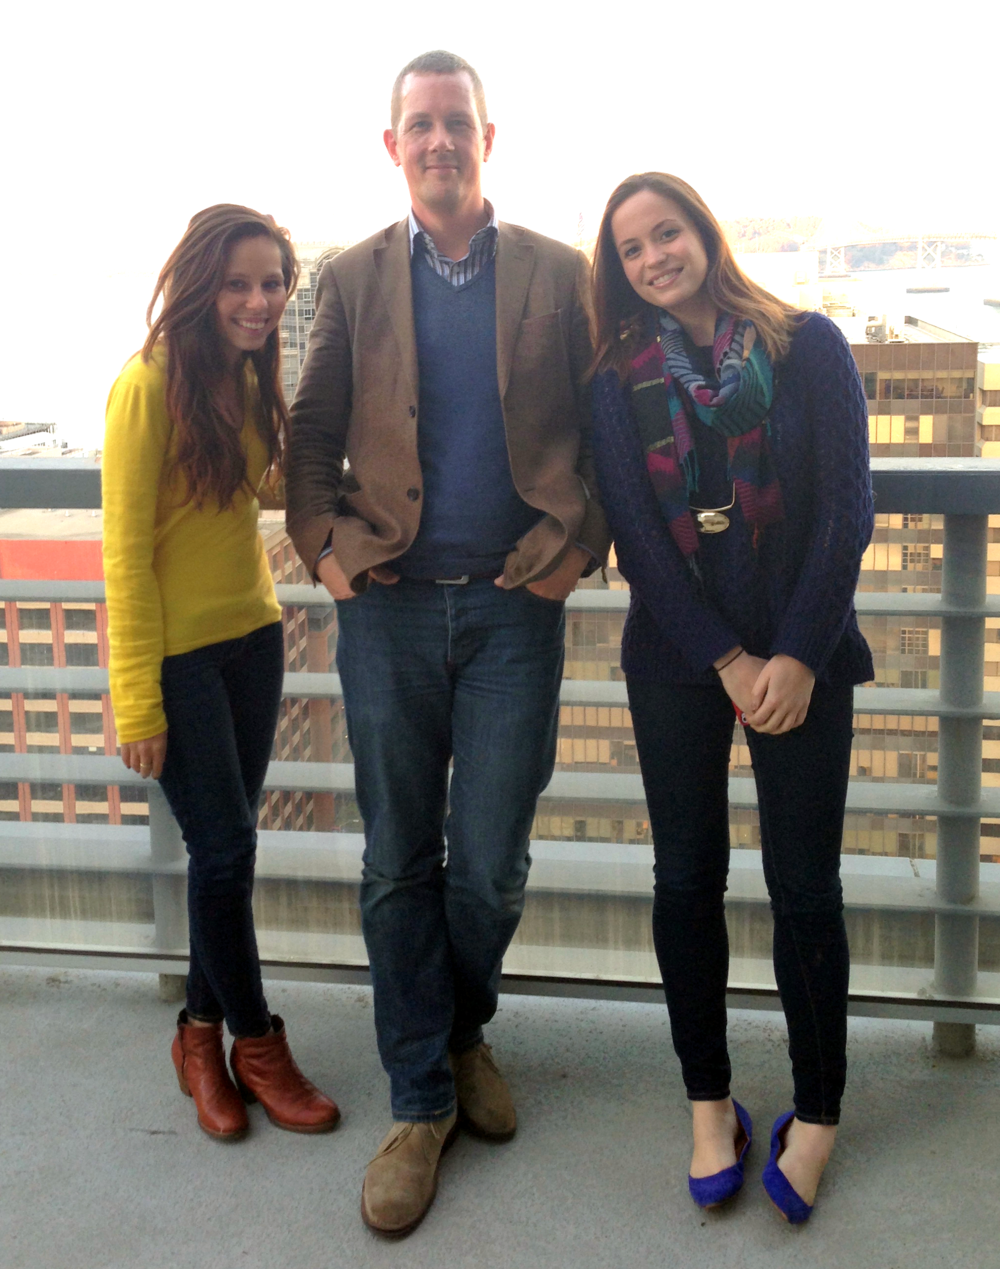 L-R: Vero, Yours Truly (never happy in front of a camera, as you can tell), and Nell.